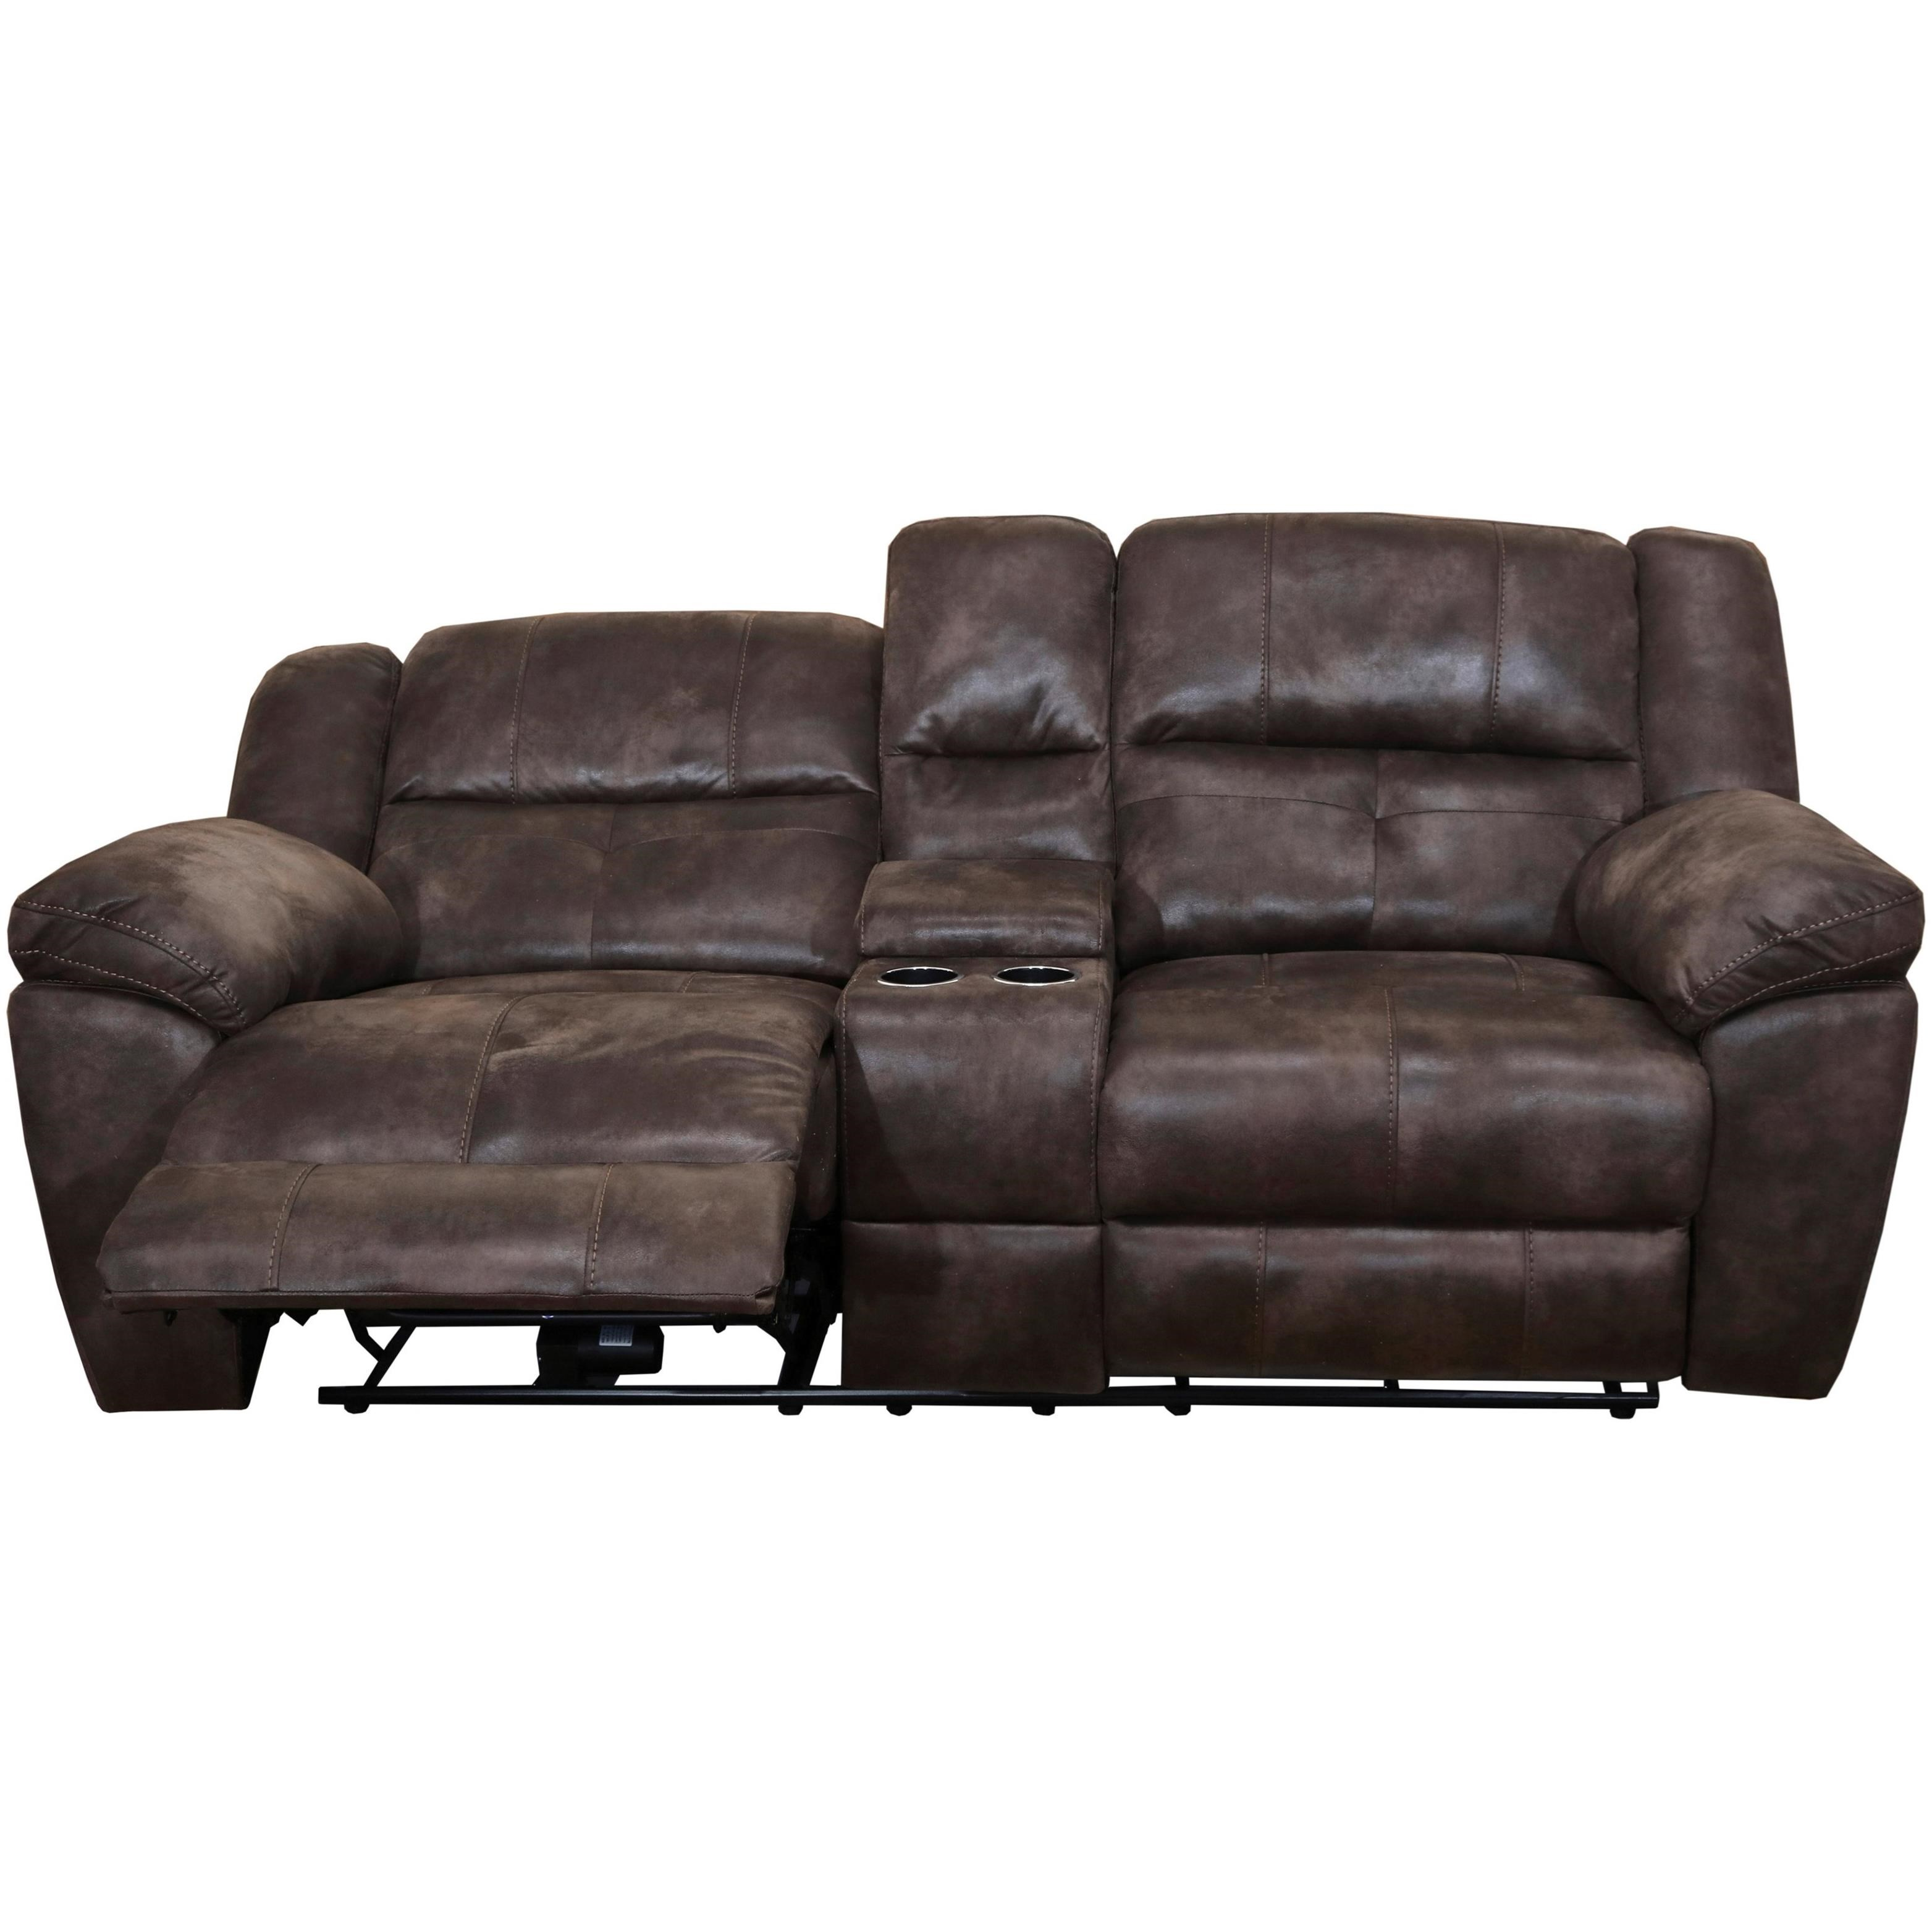 New Classic Gershwin U8492 25ph Gbn Casual Dual Recliner